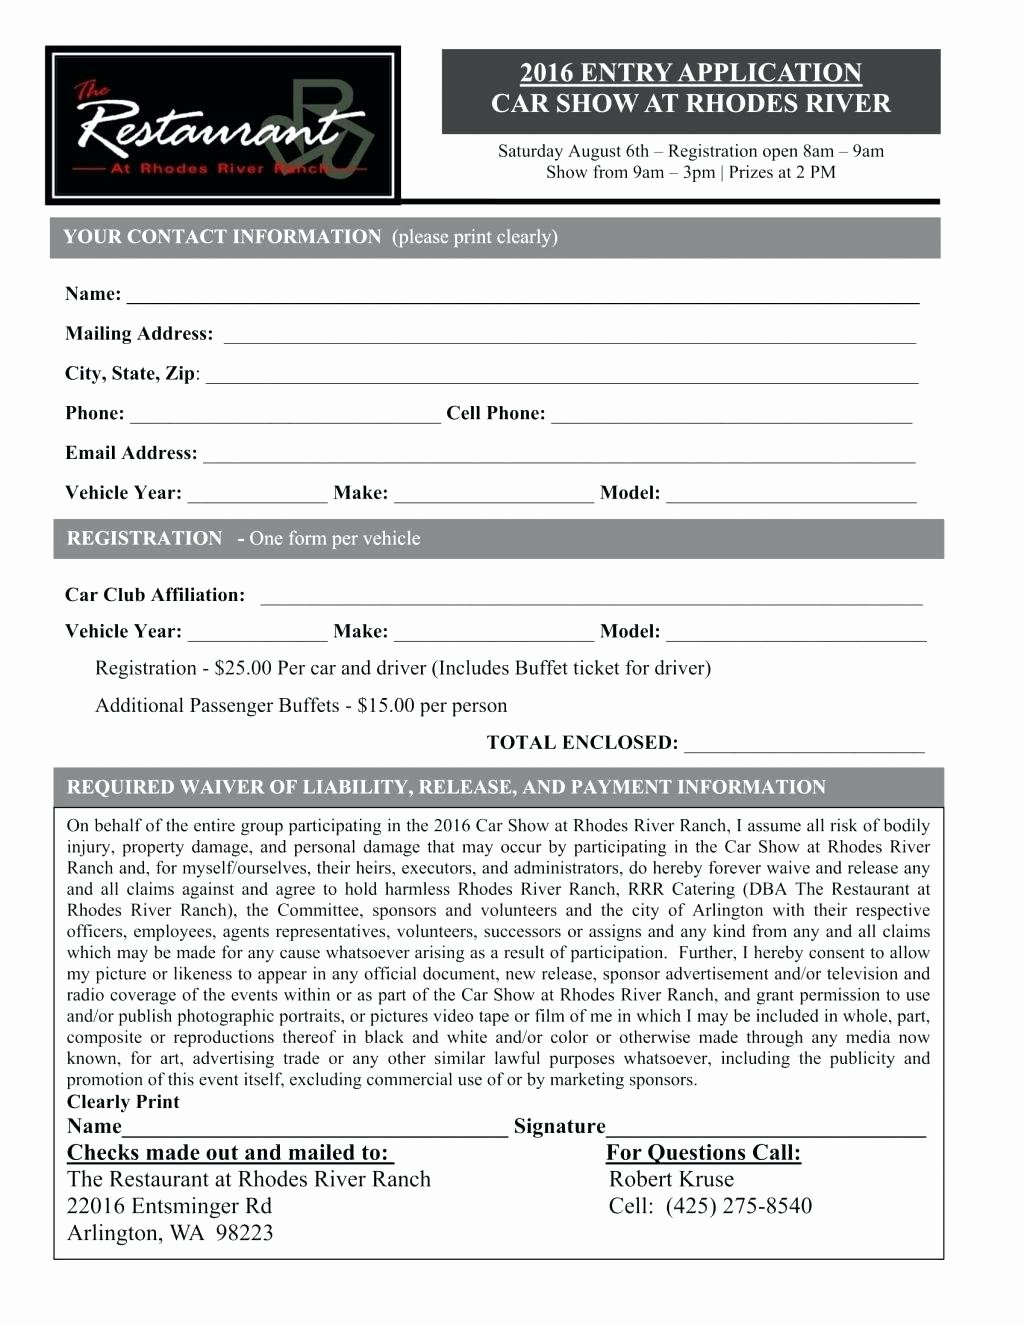 5k Registration form Template Fresh 5k Registration form Template